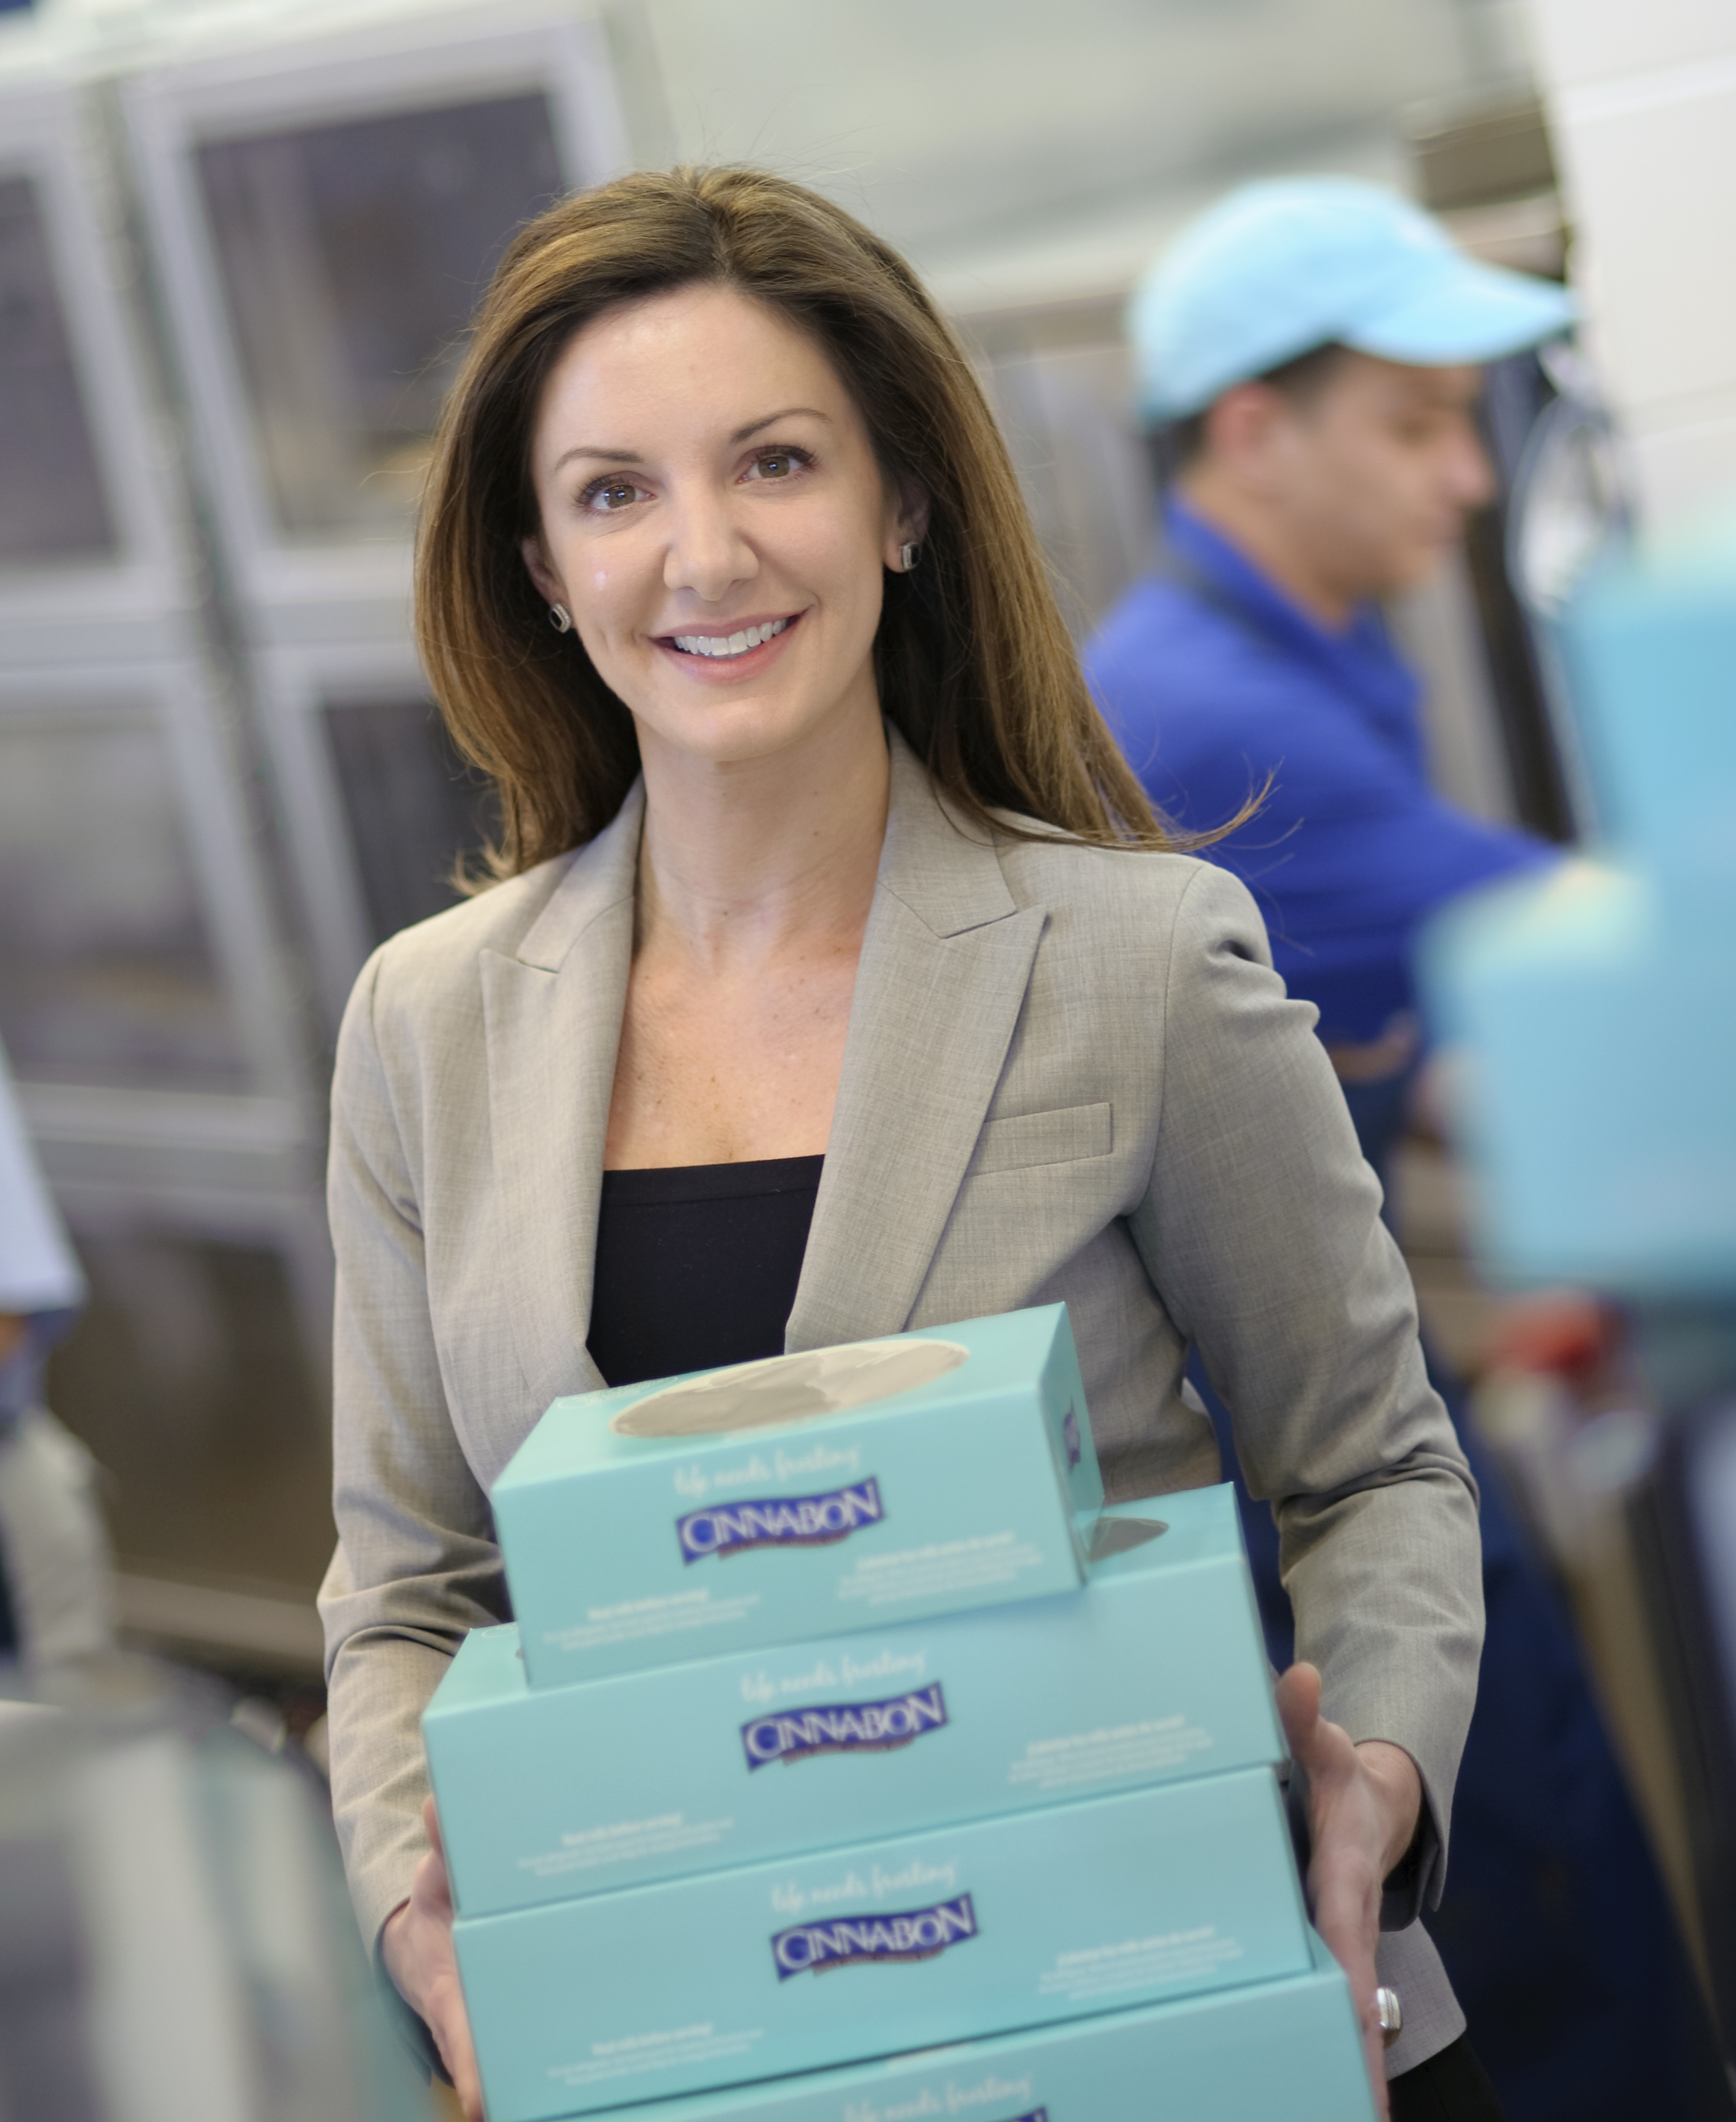 Kat Cole has been President of Cinnabon since 2010 (Photo courtesy of Kat Cole)